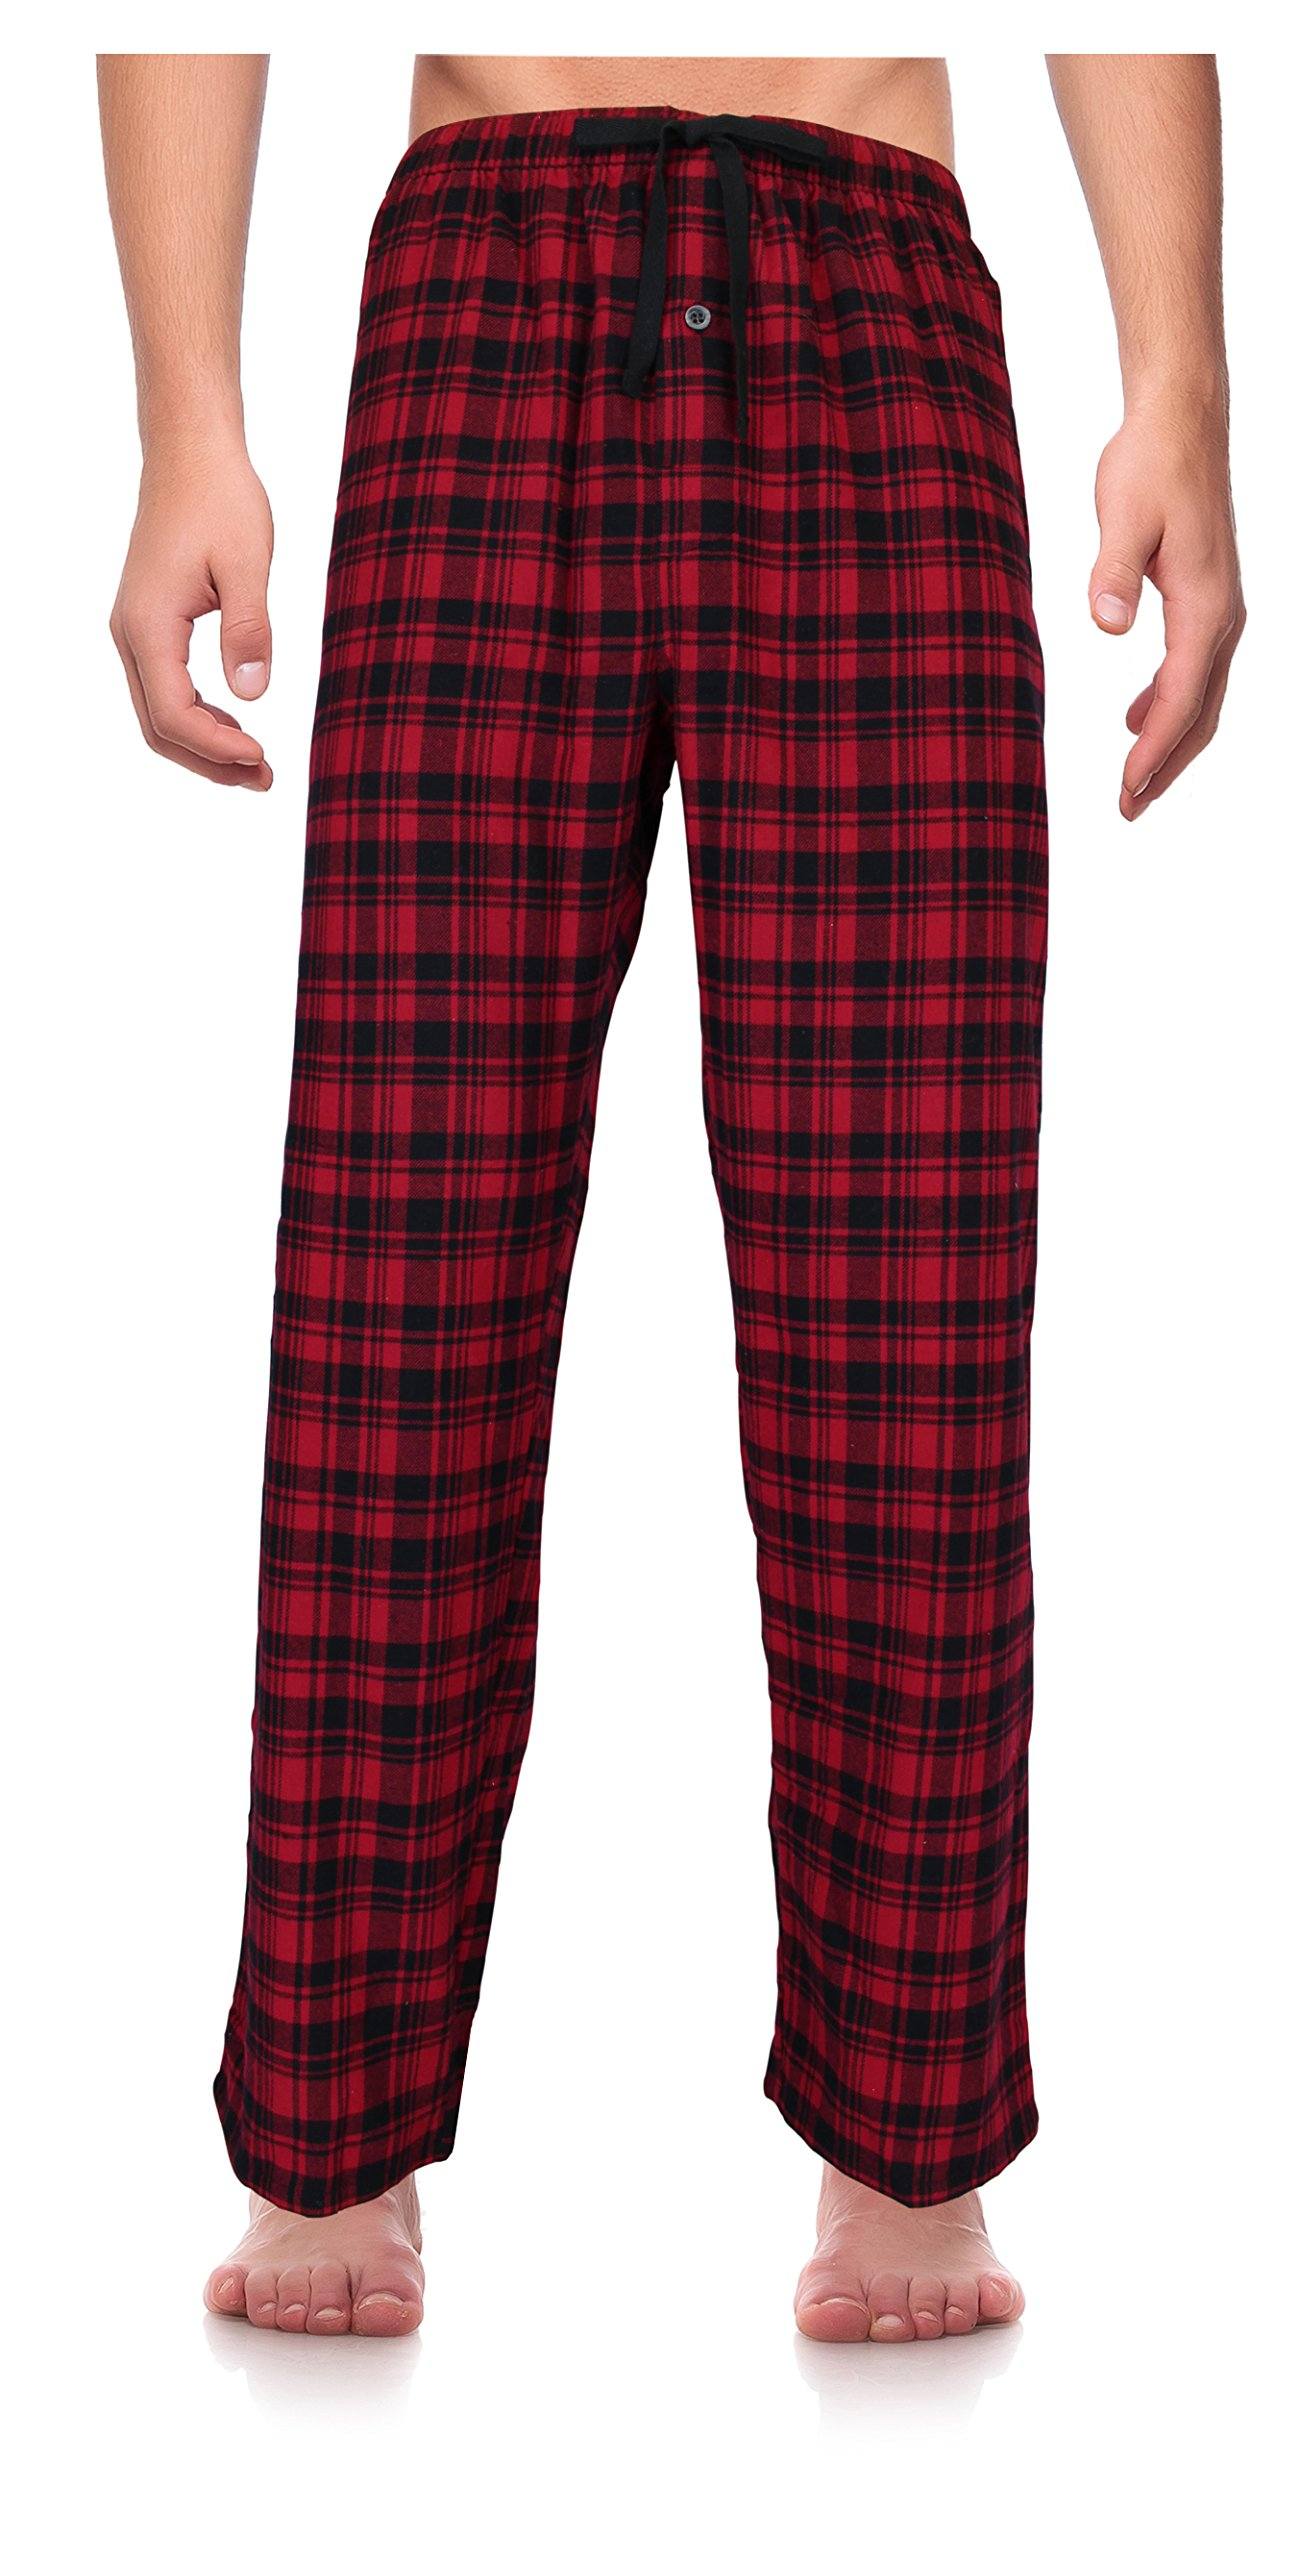 Casual Trends Classical Sleepwear Men's 100% Cotton Flannel Pajama Pants, Size Large Tall Red